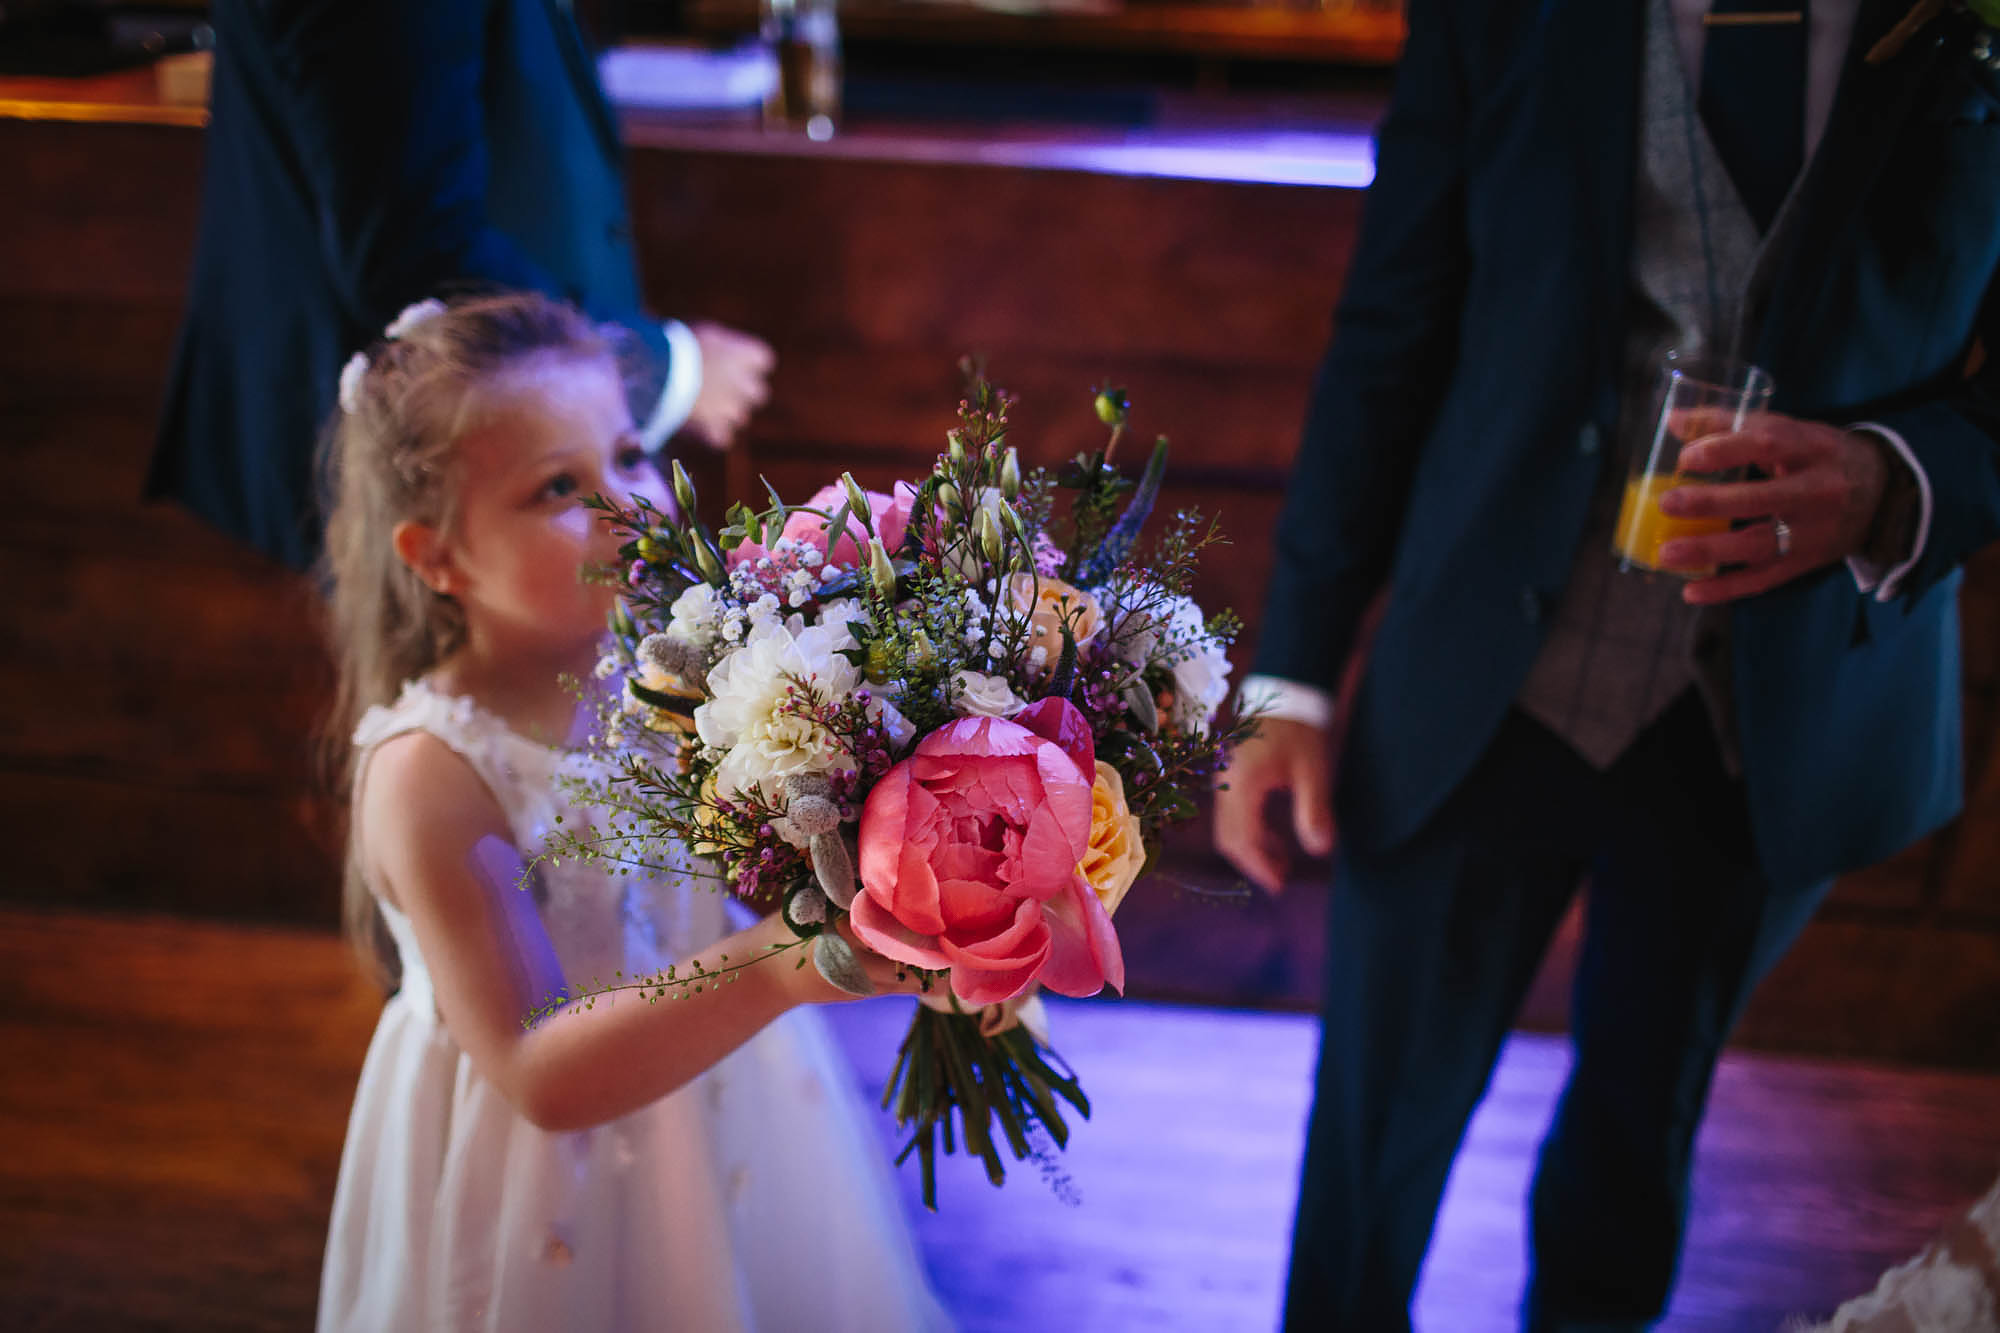 Flower girl holds the bouquet at a wedding